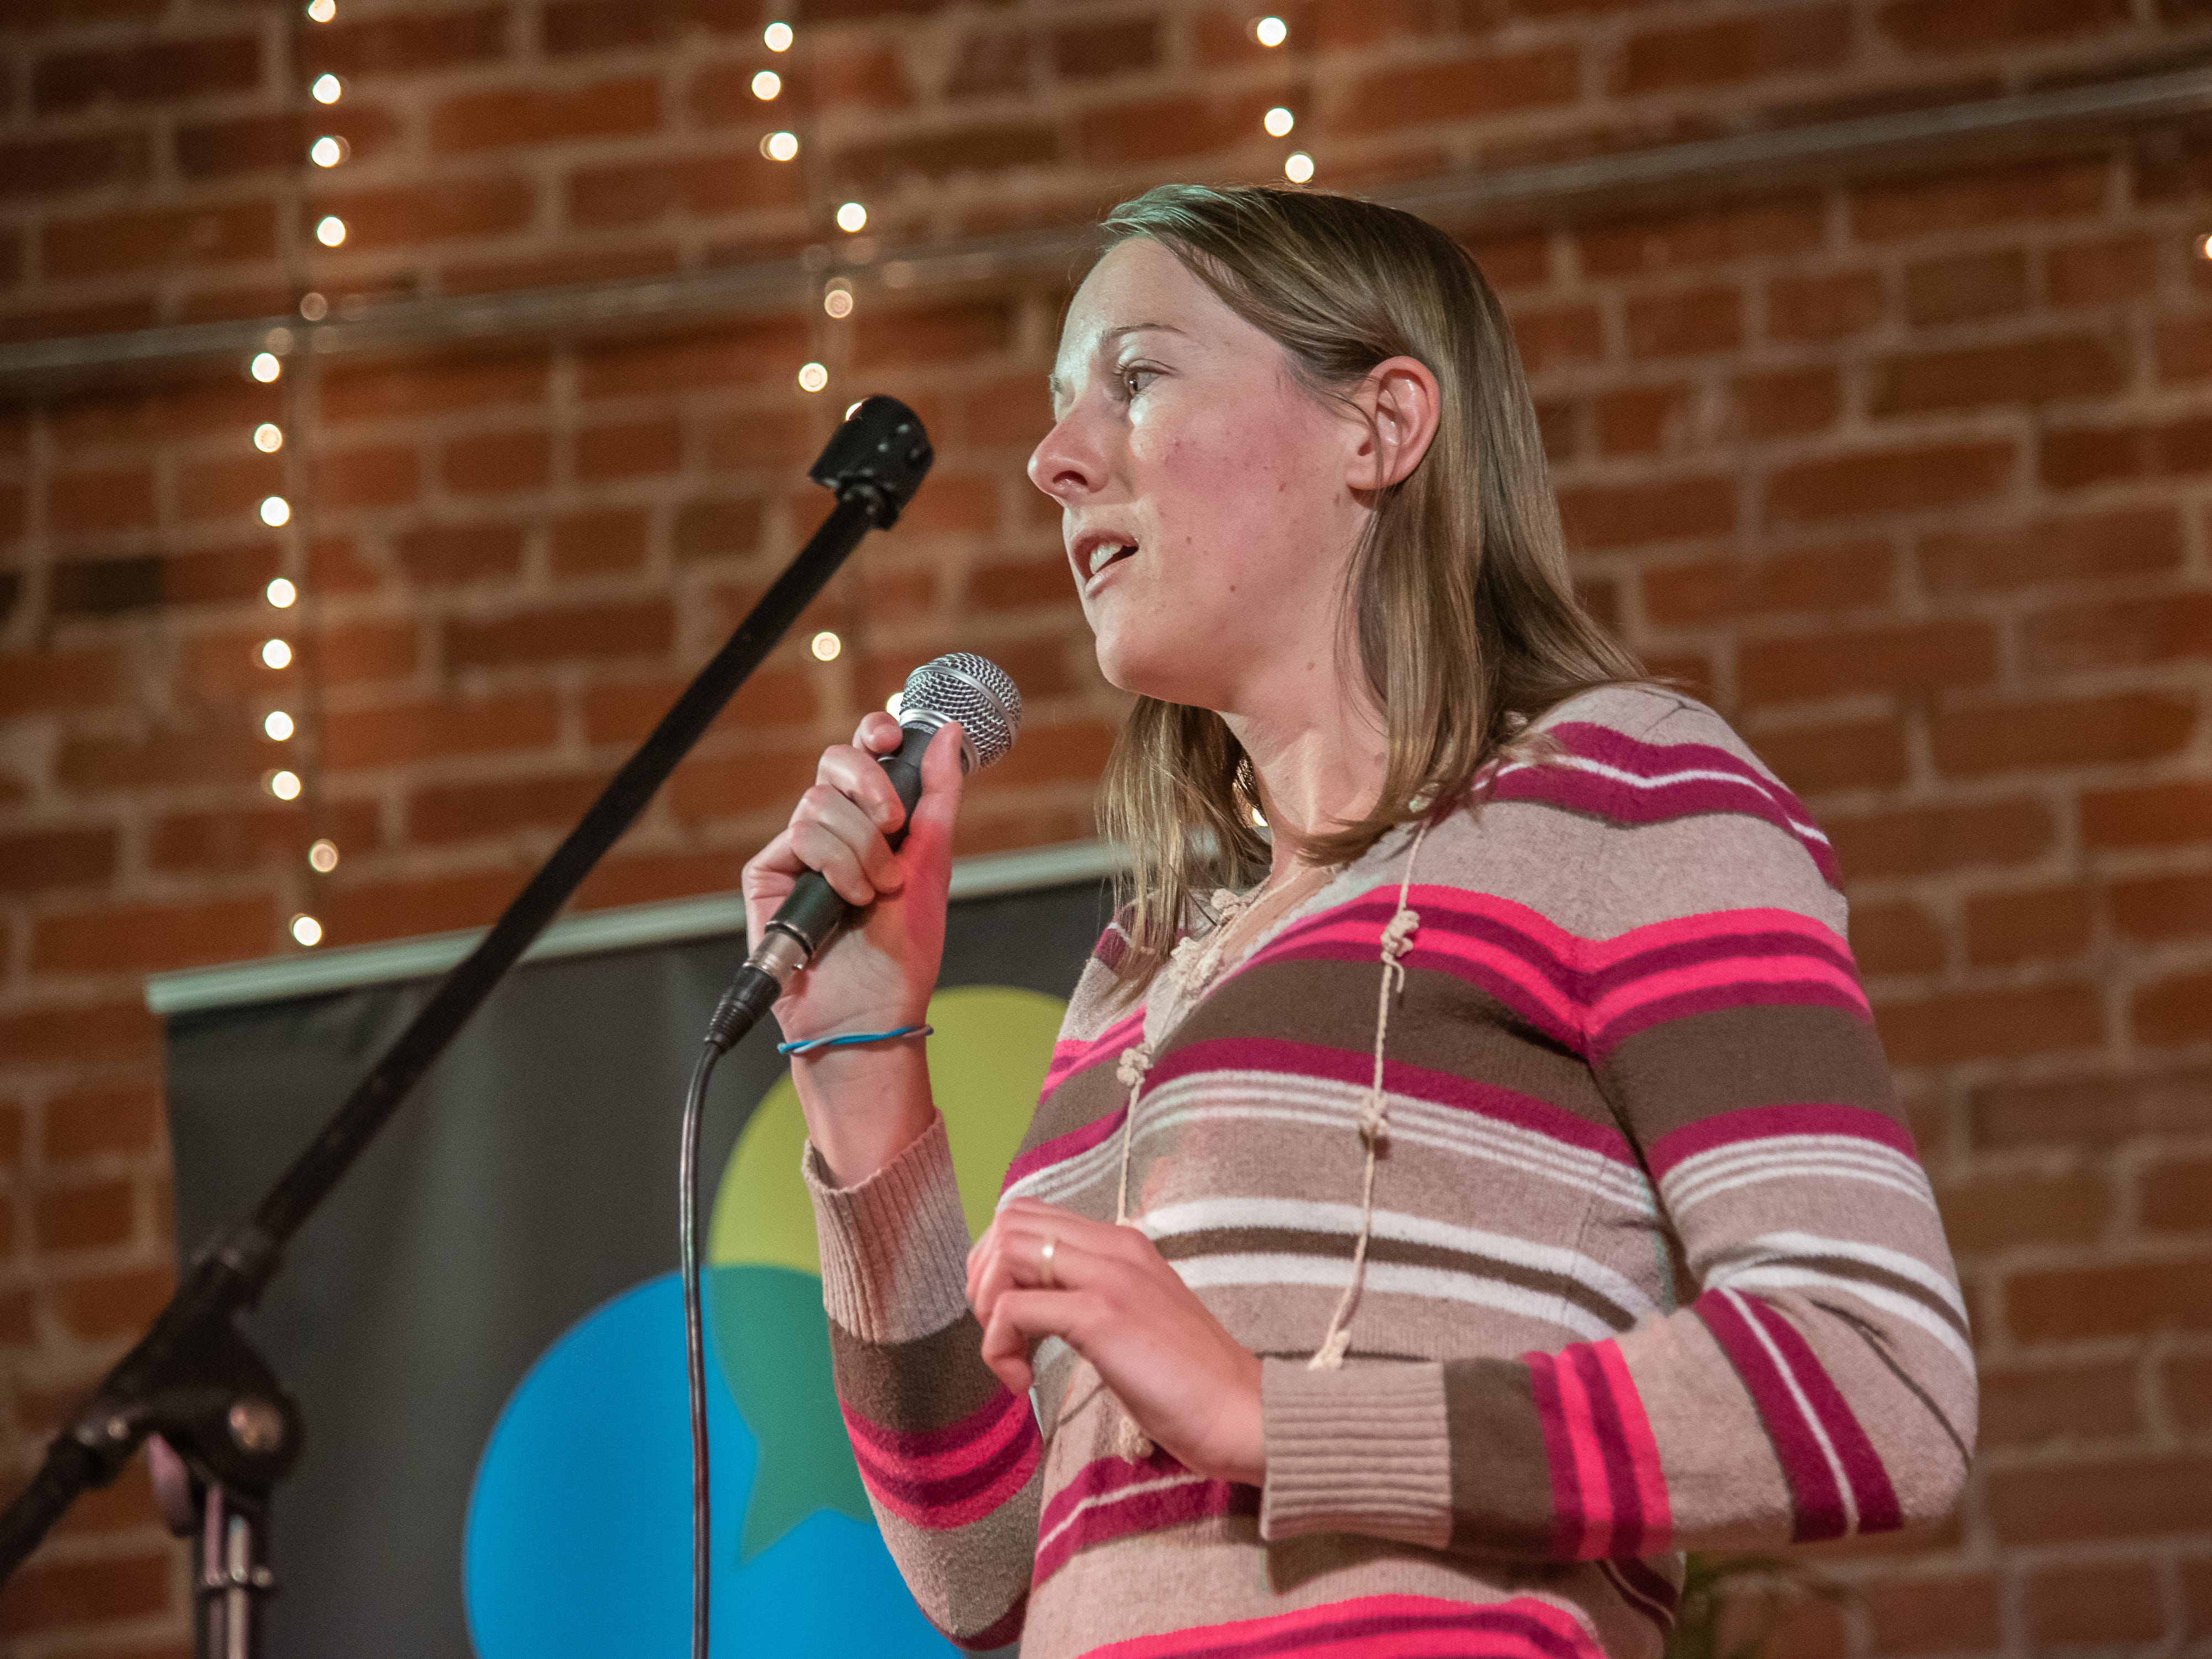 Storyteller Jessye Nemeth speaks of love and heartbreak during the Coloradoan Storytellers Project at Everyday Joe's Coffee House on Wednesday, February 20, 2019, in Fort Collins, Colo.